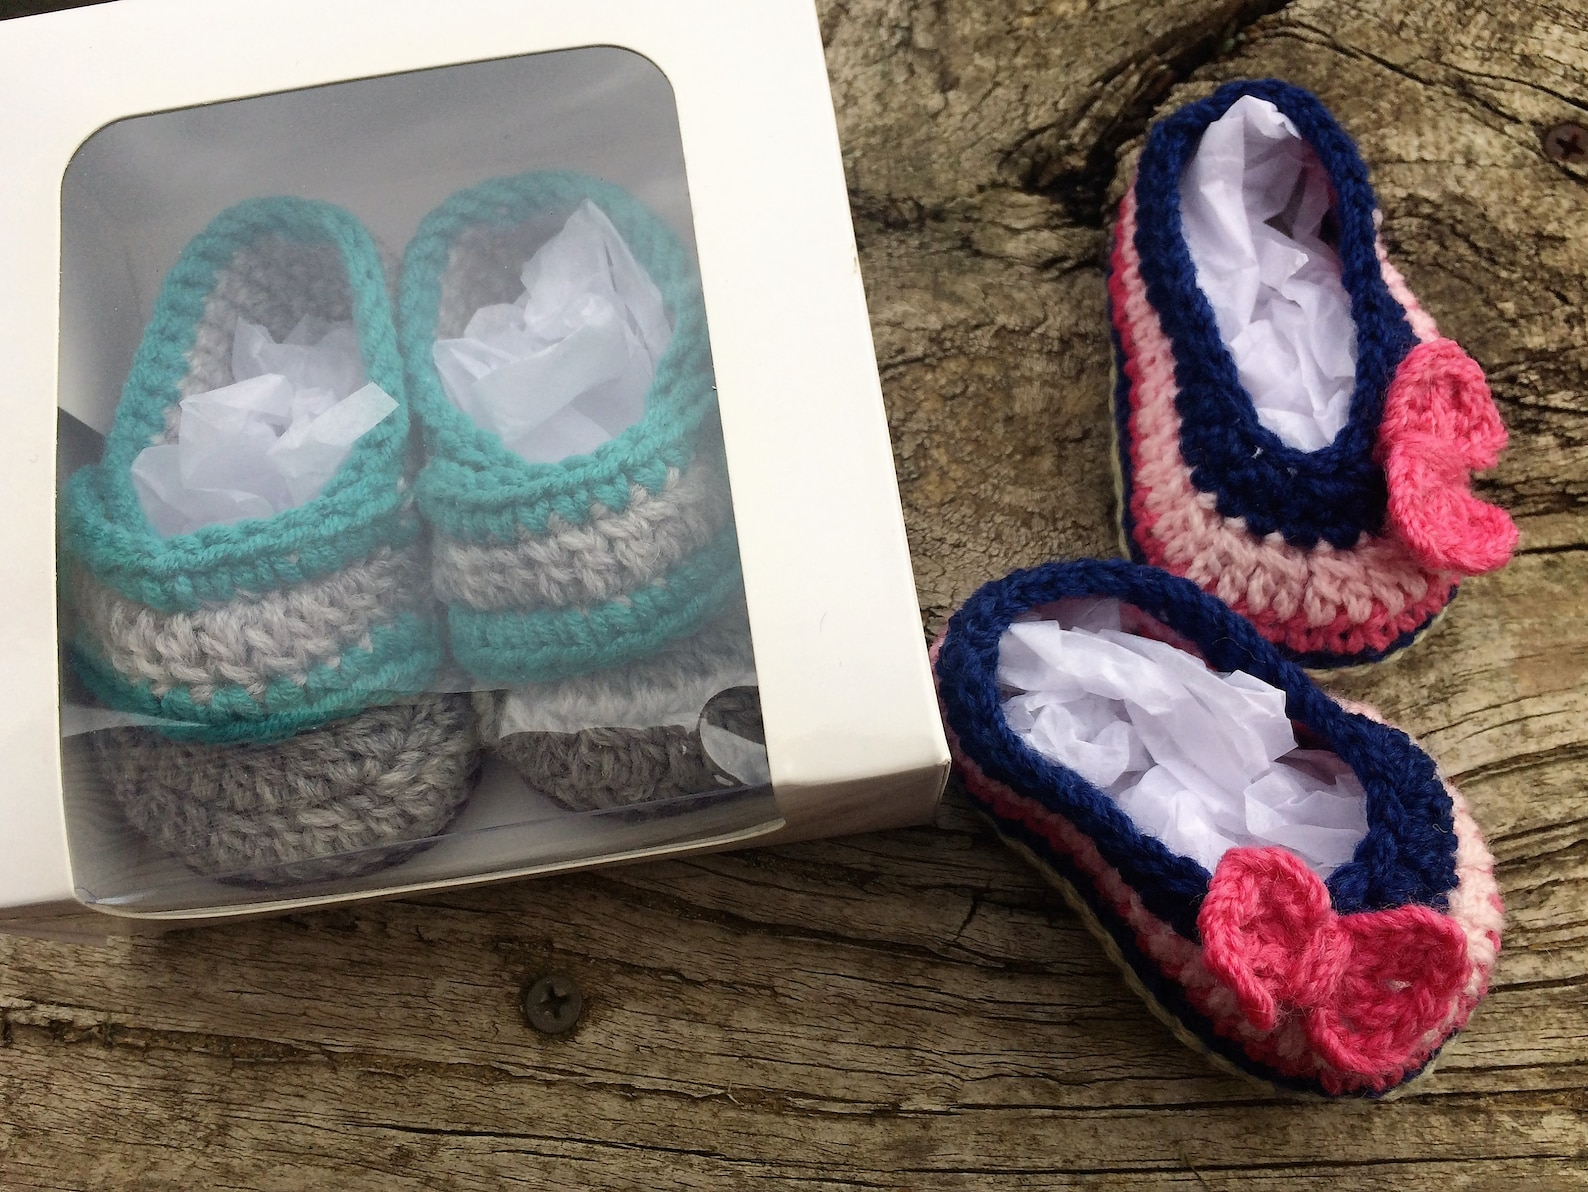 baby booties. crocheted baby shoes in gift box. baby loafers or baby ballet flats with bow for newborn to 3 months old. baby sho